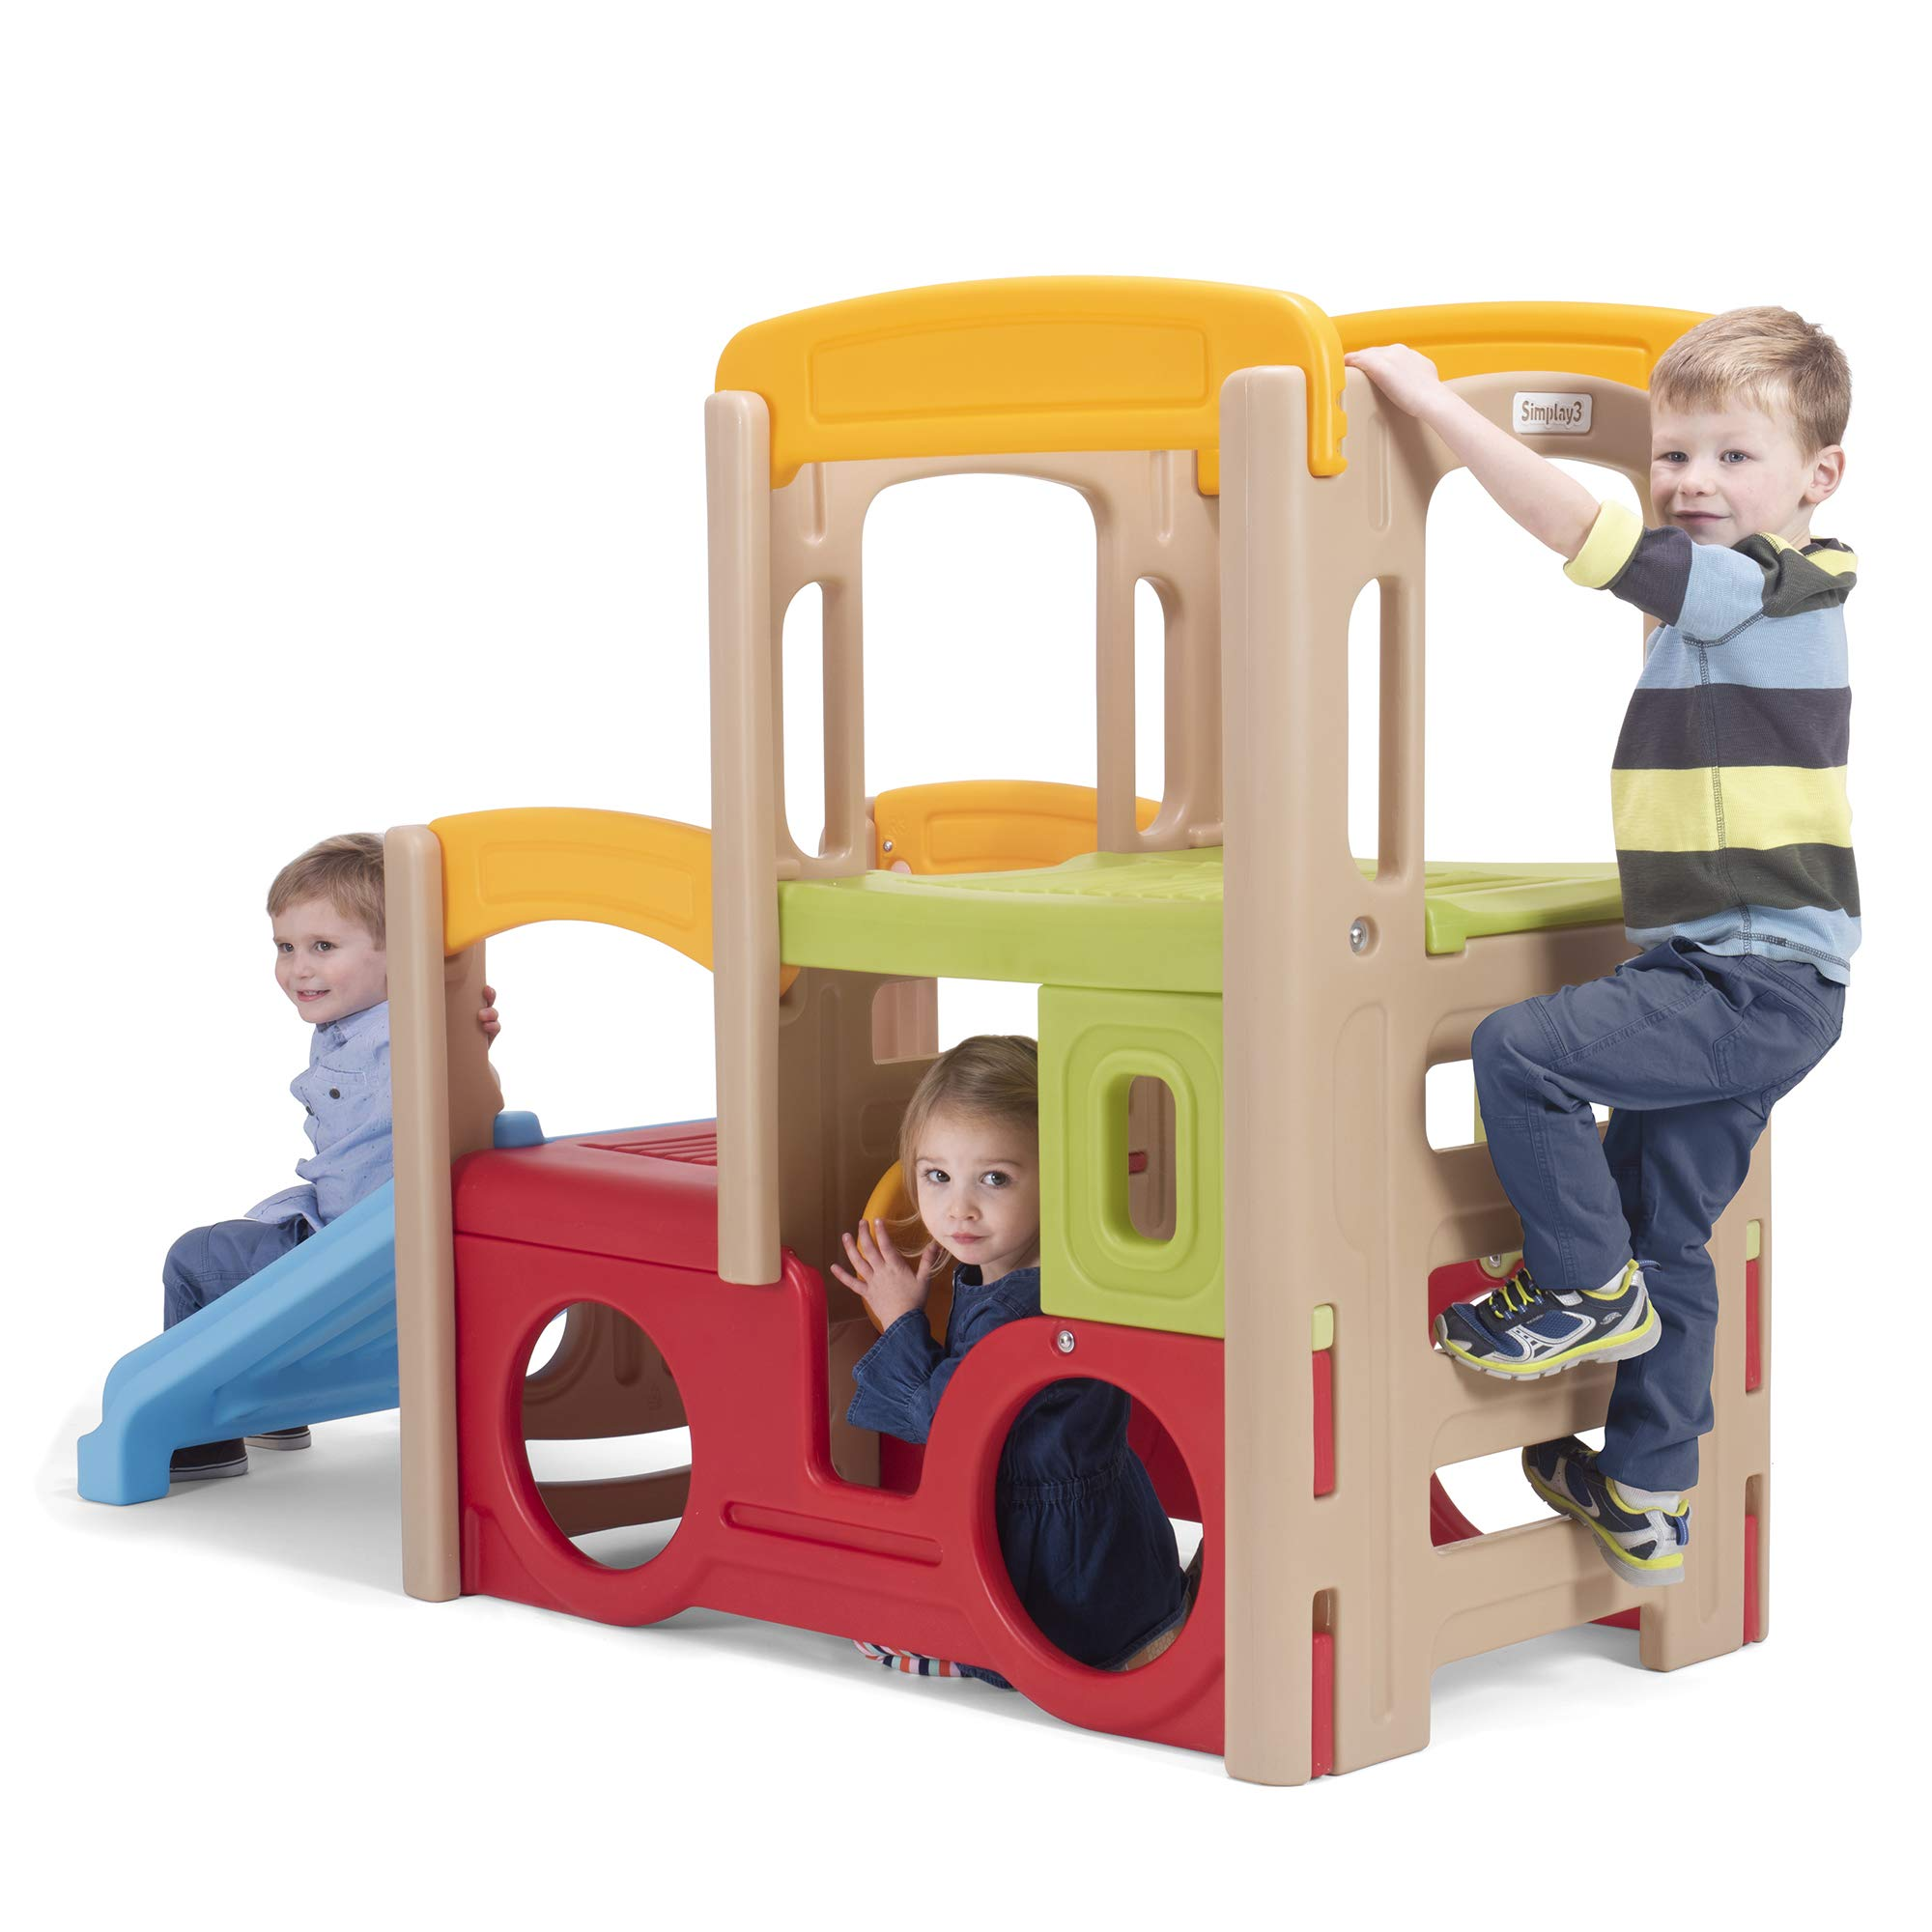 Simplay3 Young Explorers Adventure Climber - Indoor Outdoor Crawl Climb Drive Slide Playset for Children by Simplay3 (Image #4)